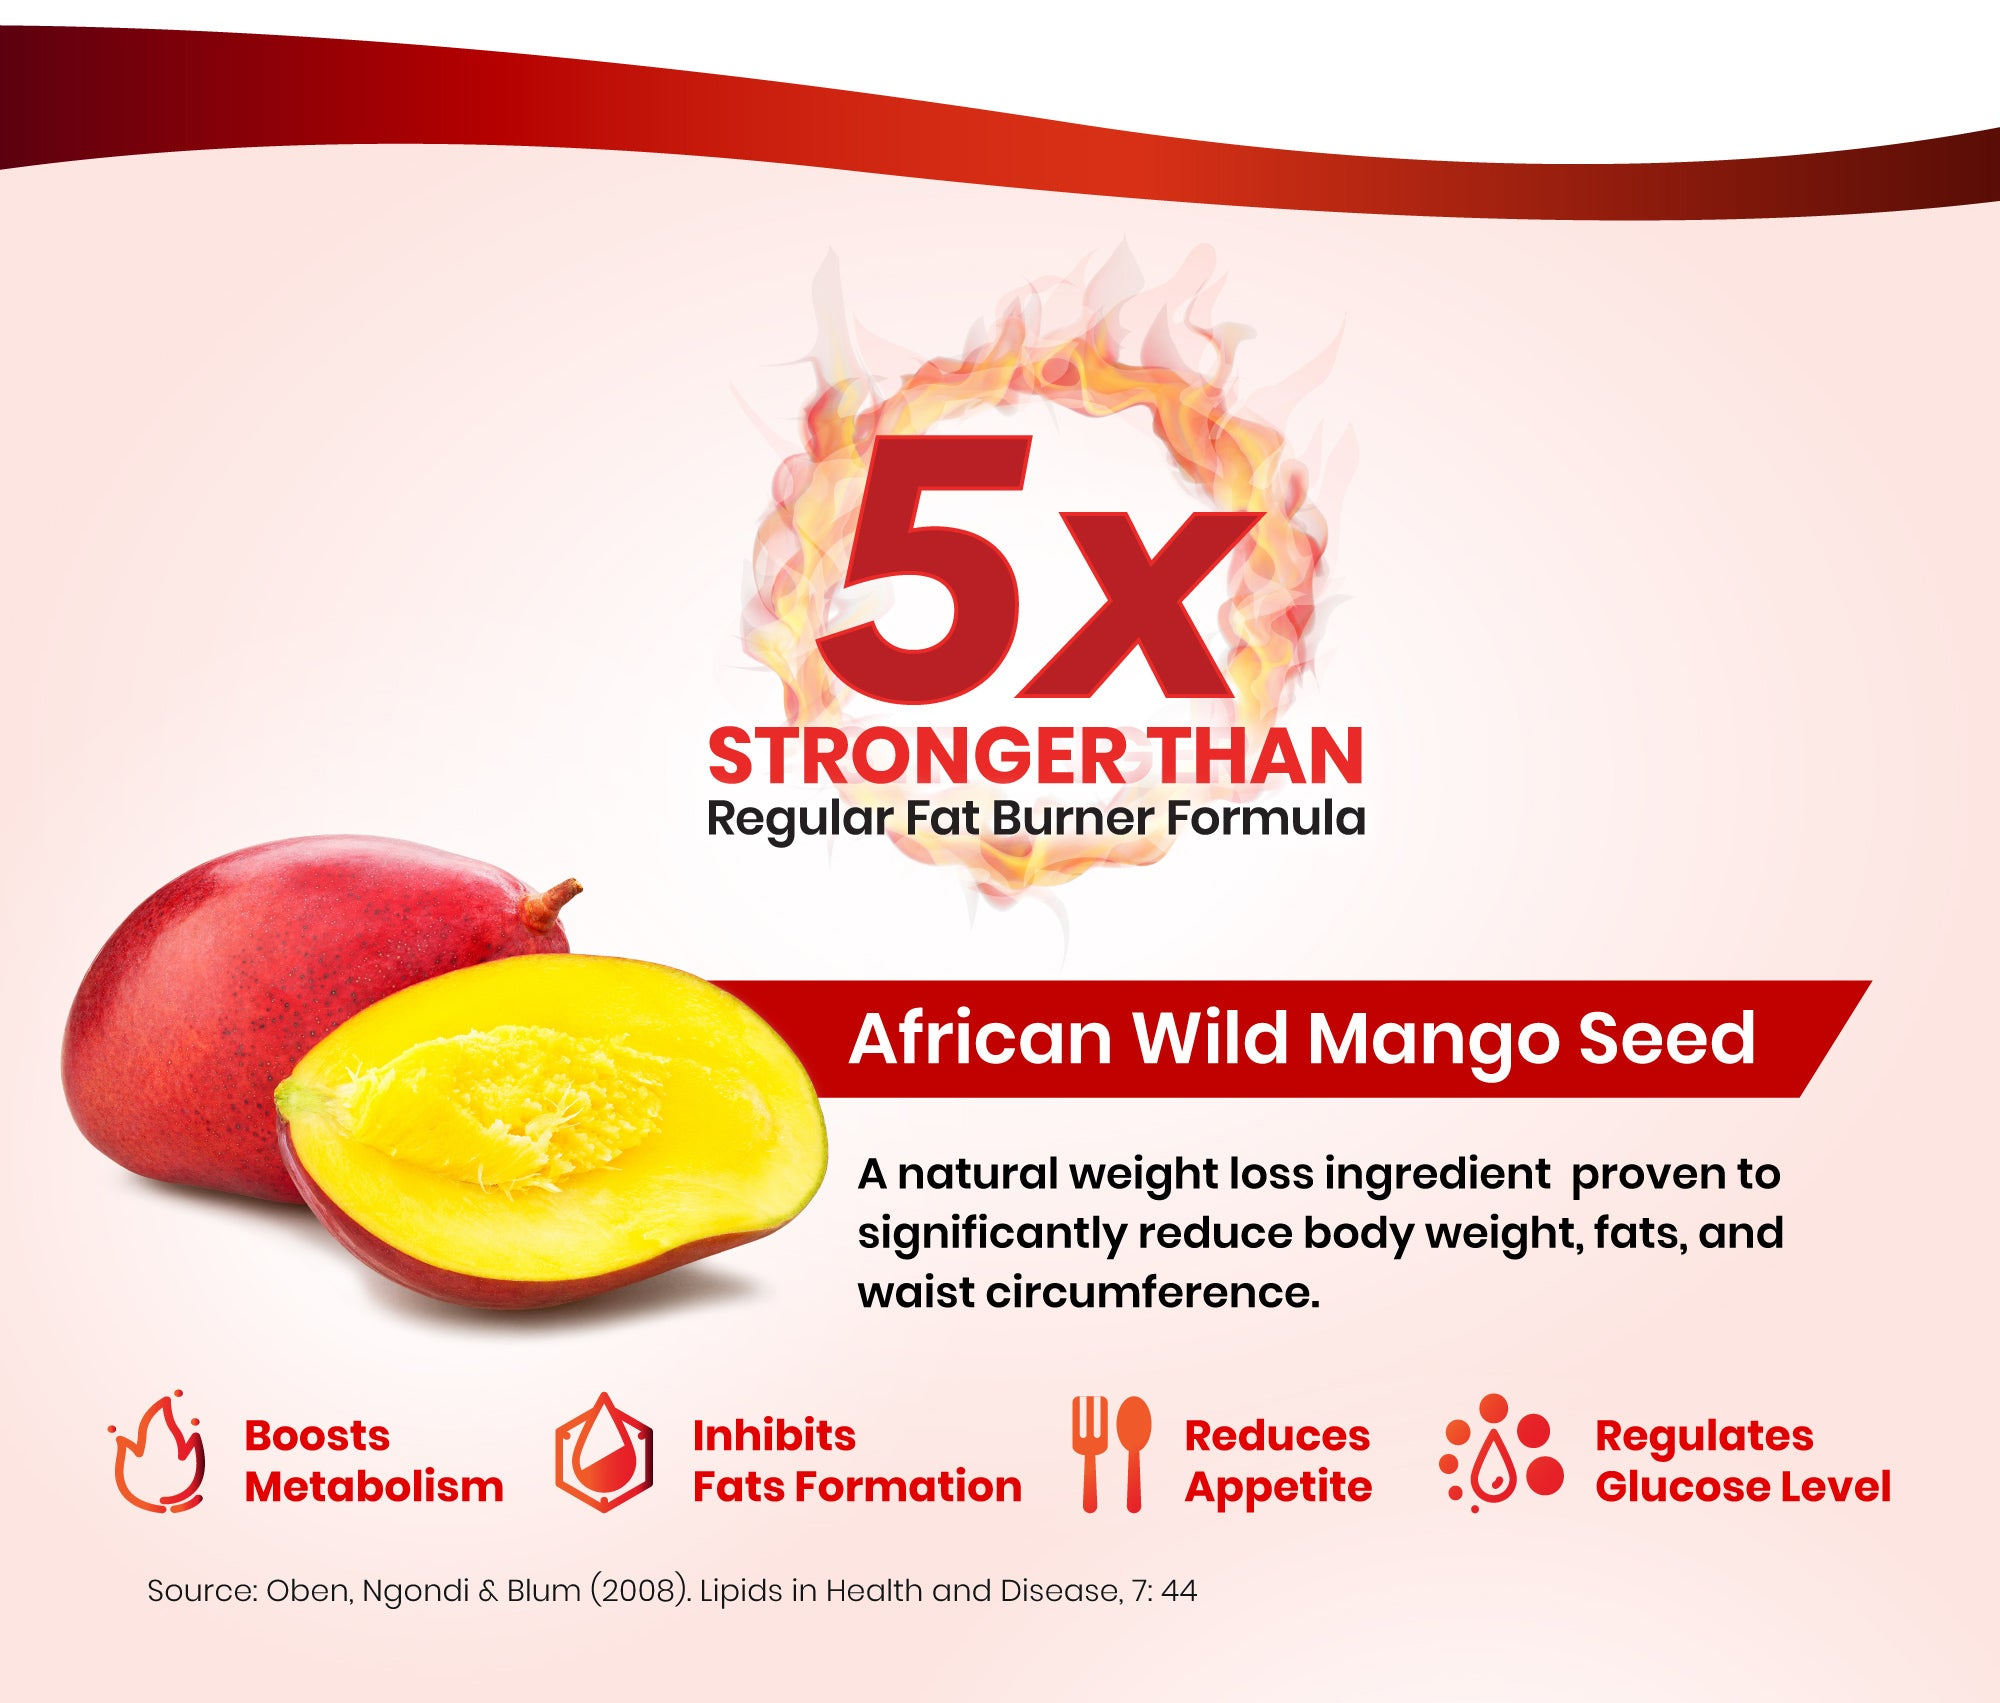 One of the potent key ingredient is the African Wild Mango Seed as it contains natural weight loss properties which is proven to significantly reduce body weight, fats and waist circumference.